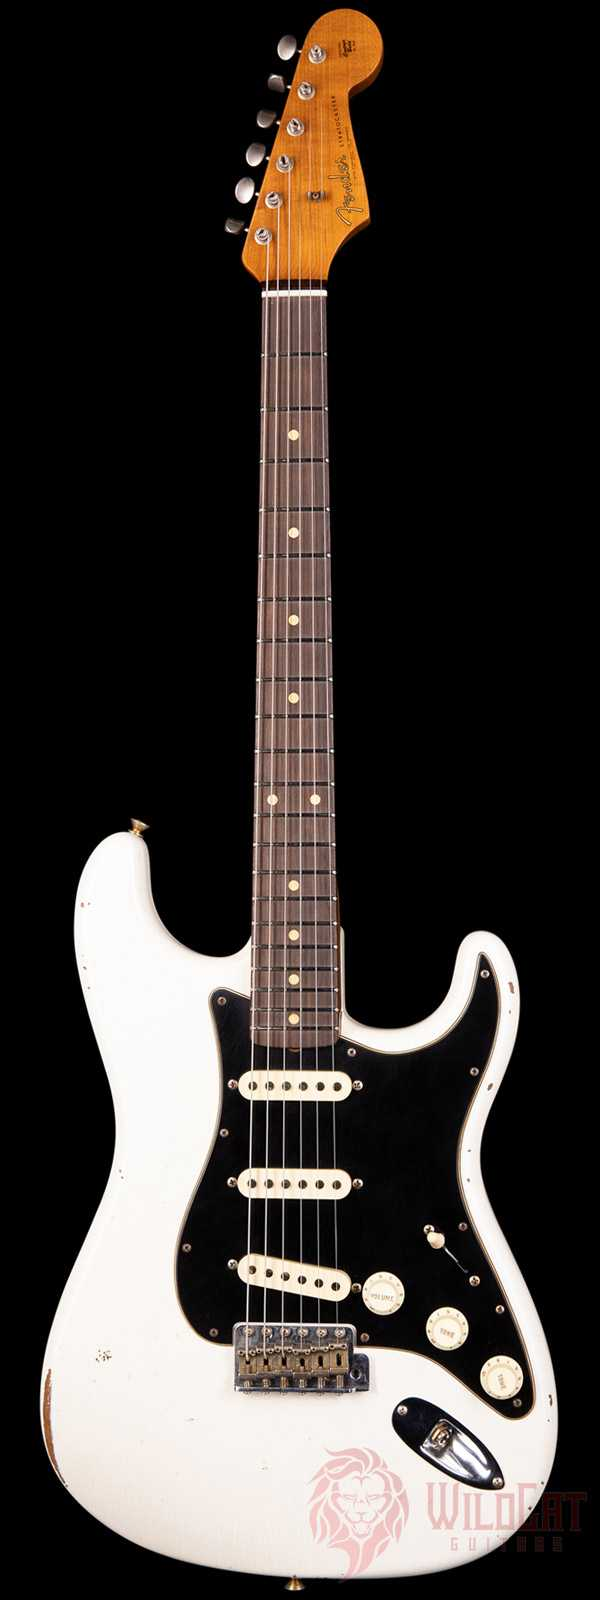 Fender Custom Shop Limited Edition Roasted Poblano Stratocaster Relic Aged Olympic White